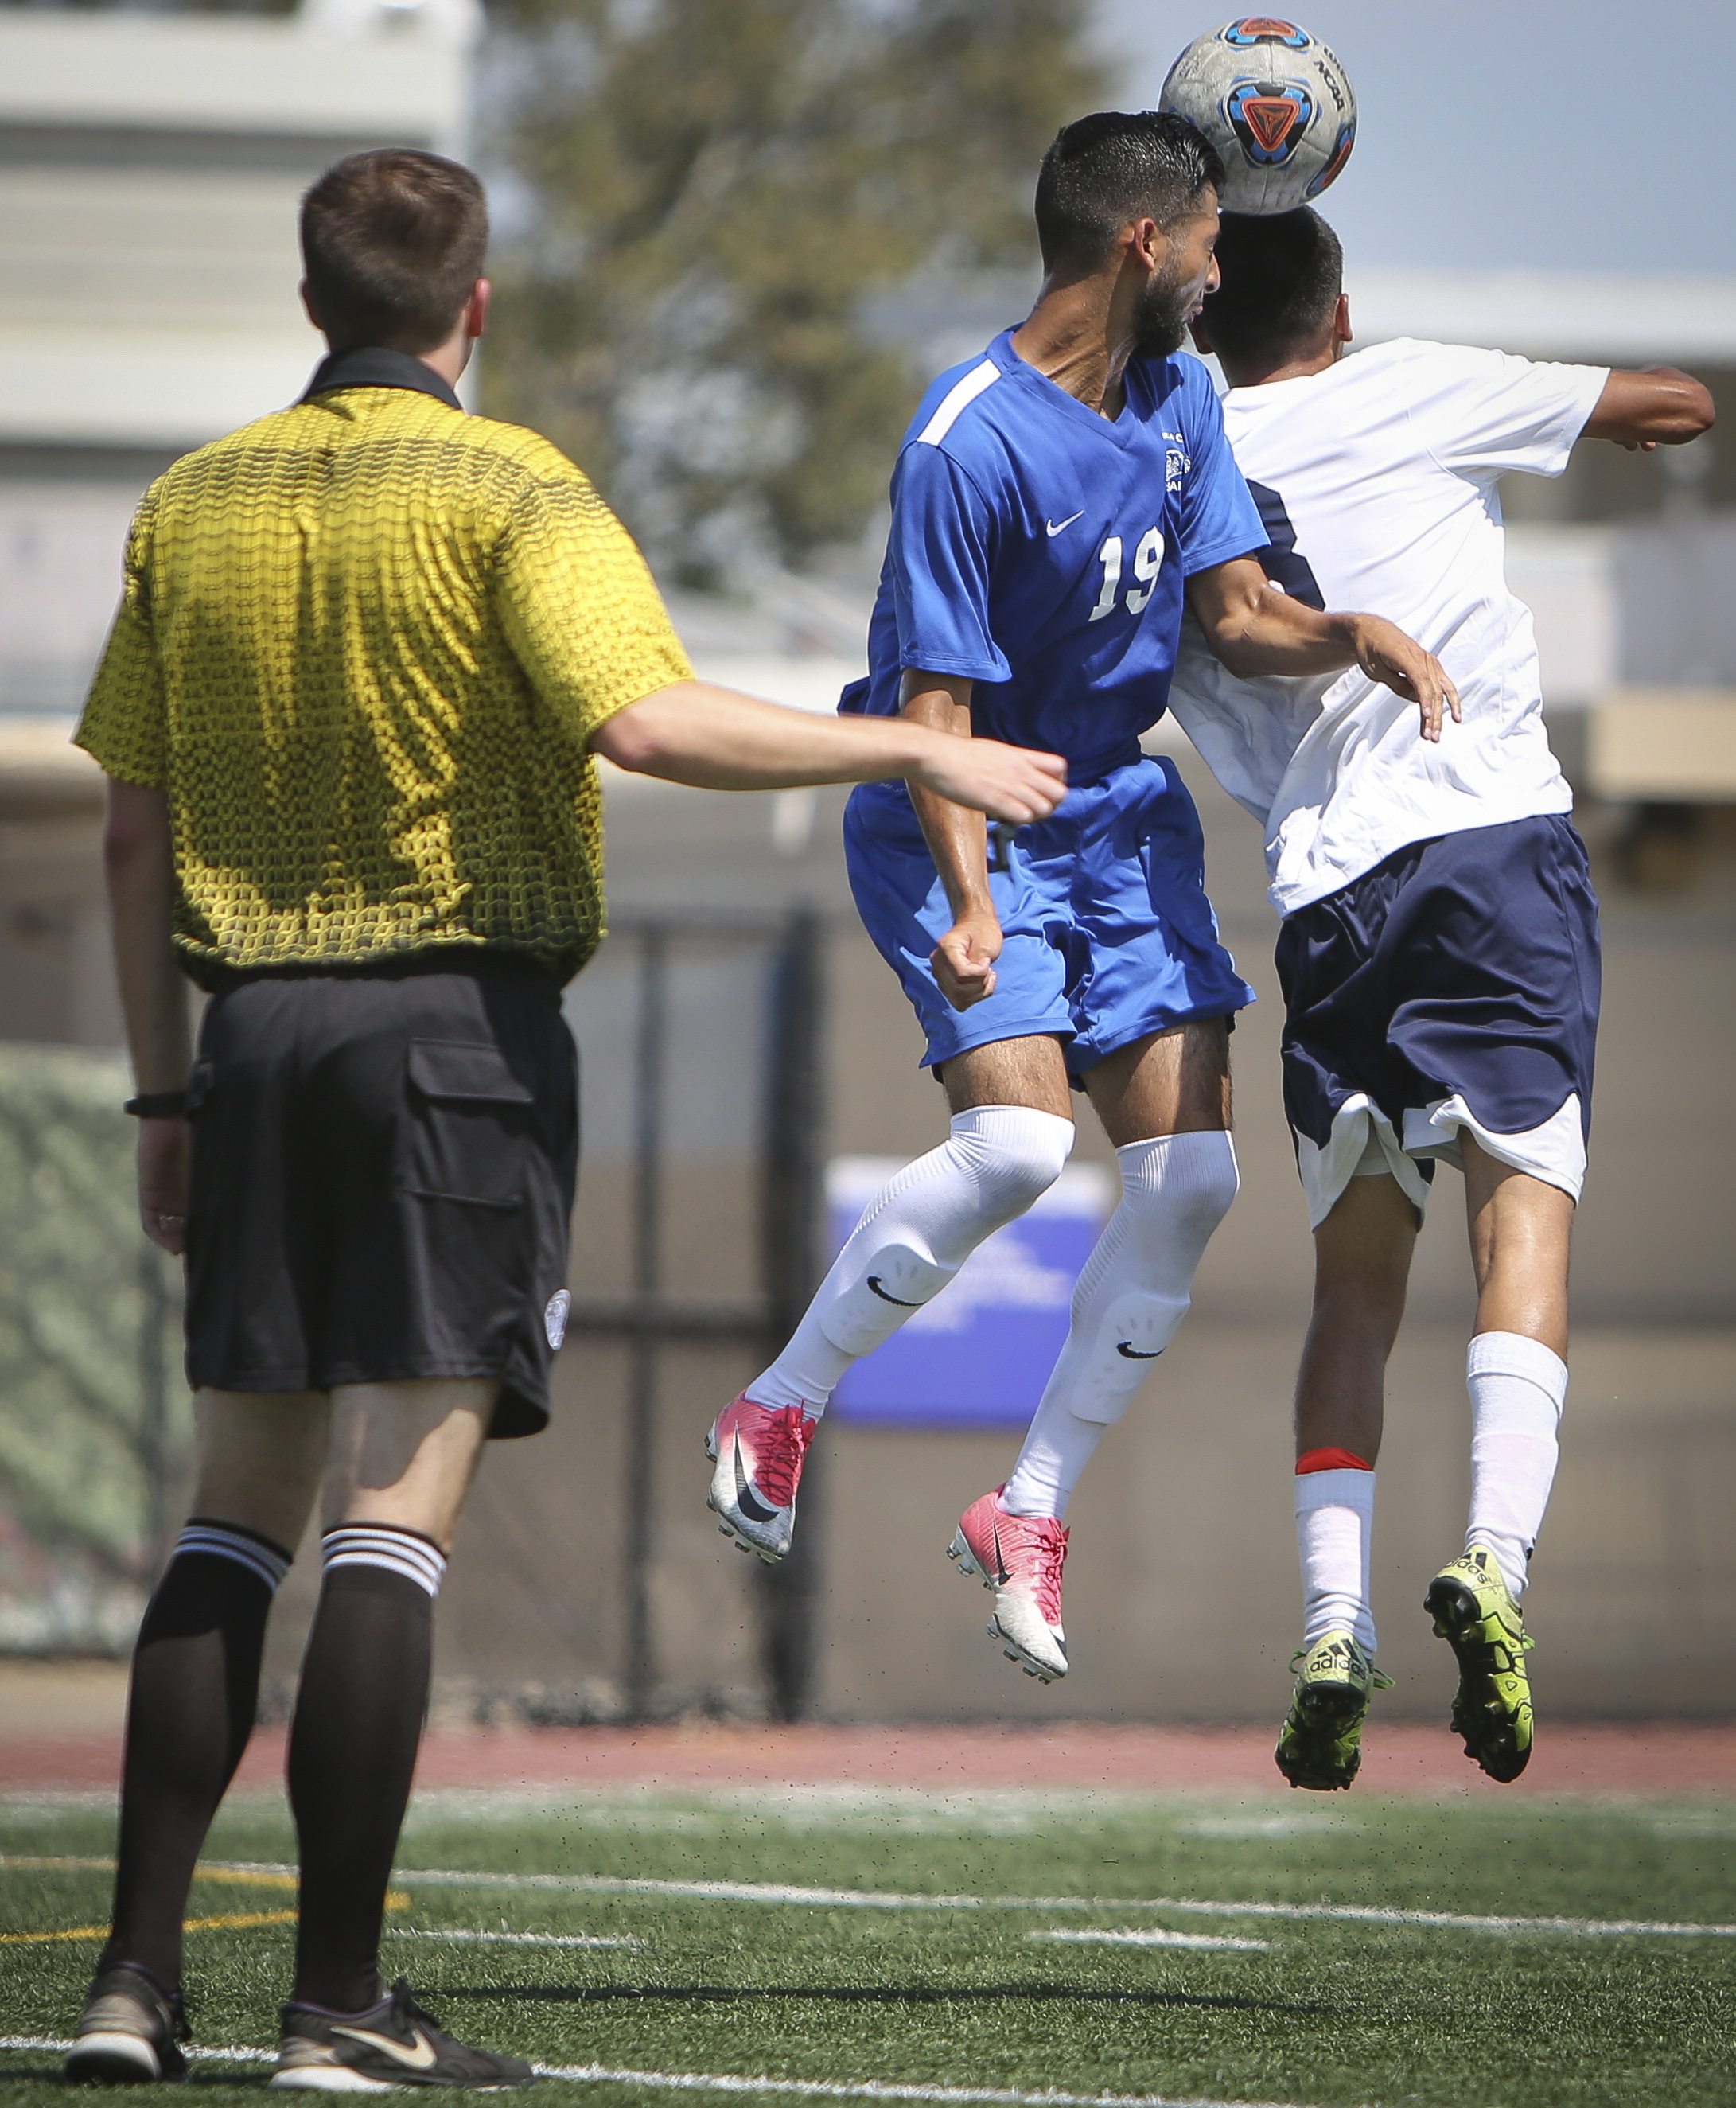 Giancarlo Canas-Jarquin (19) of the Santa Monica College Corsairs mens soccer team fights for possesion against Everardo Candelas (8) of the El Camino College Warriors, Friday, September 1st, 2017, at the Santa Monica College Main Campus field in Santa Monica, California. The Corsairs beat The Warriors 5-1. (Daniel Bowyer/Corsair Staff)